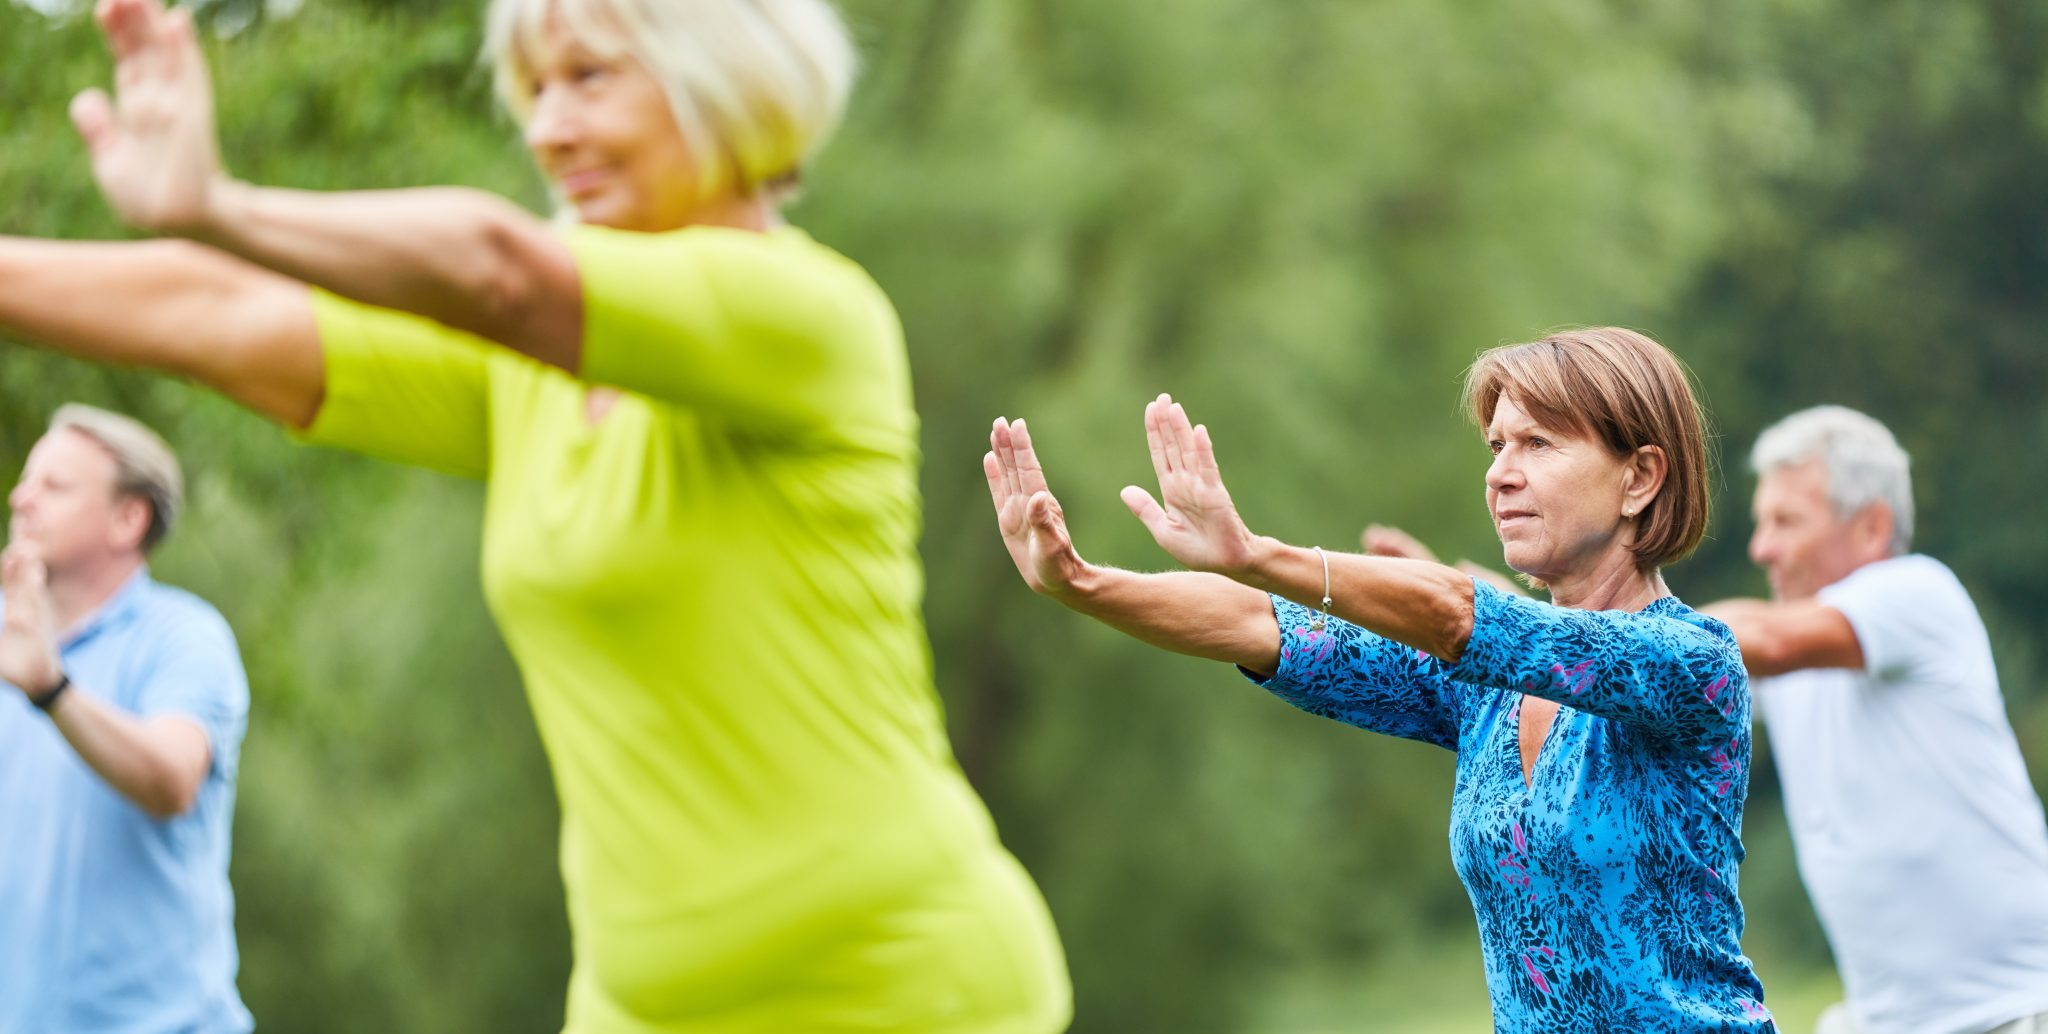 YMCA Tai Chi Flow classes allow for additional movement and flow.